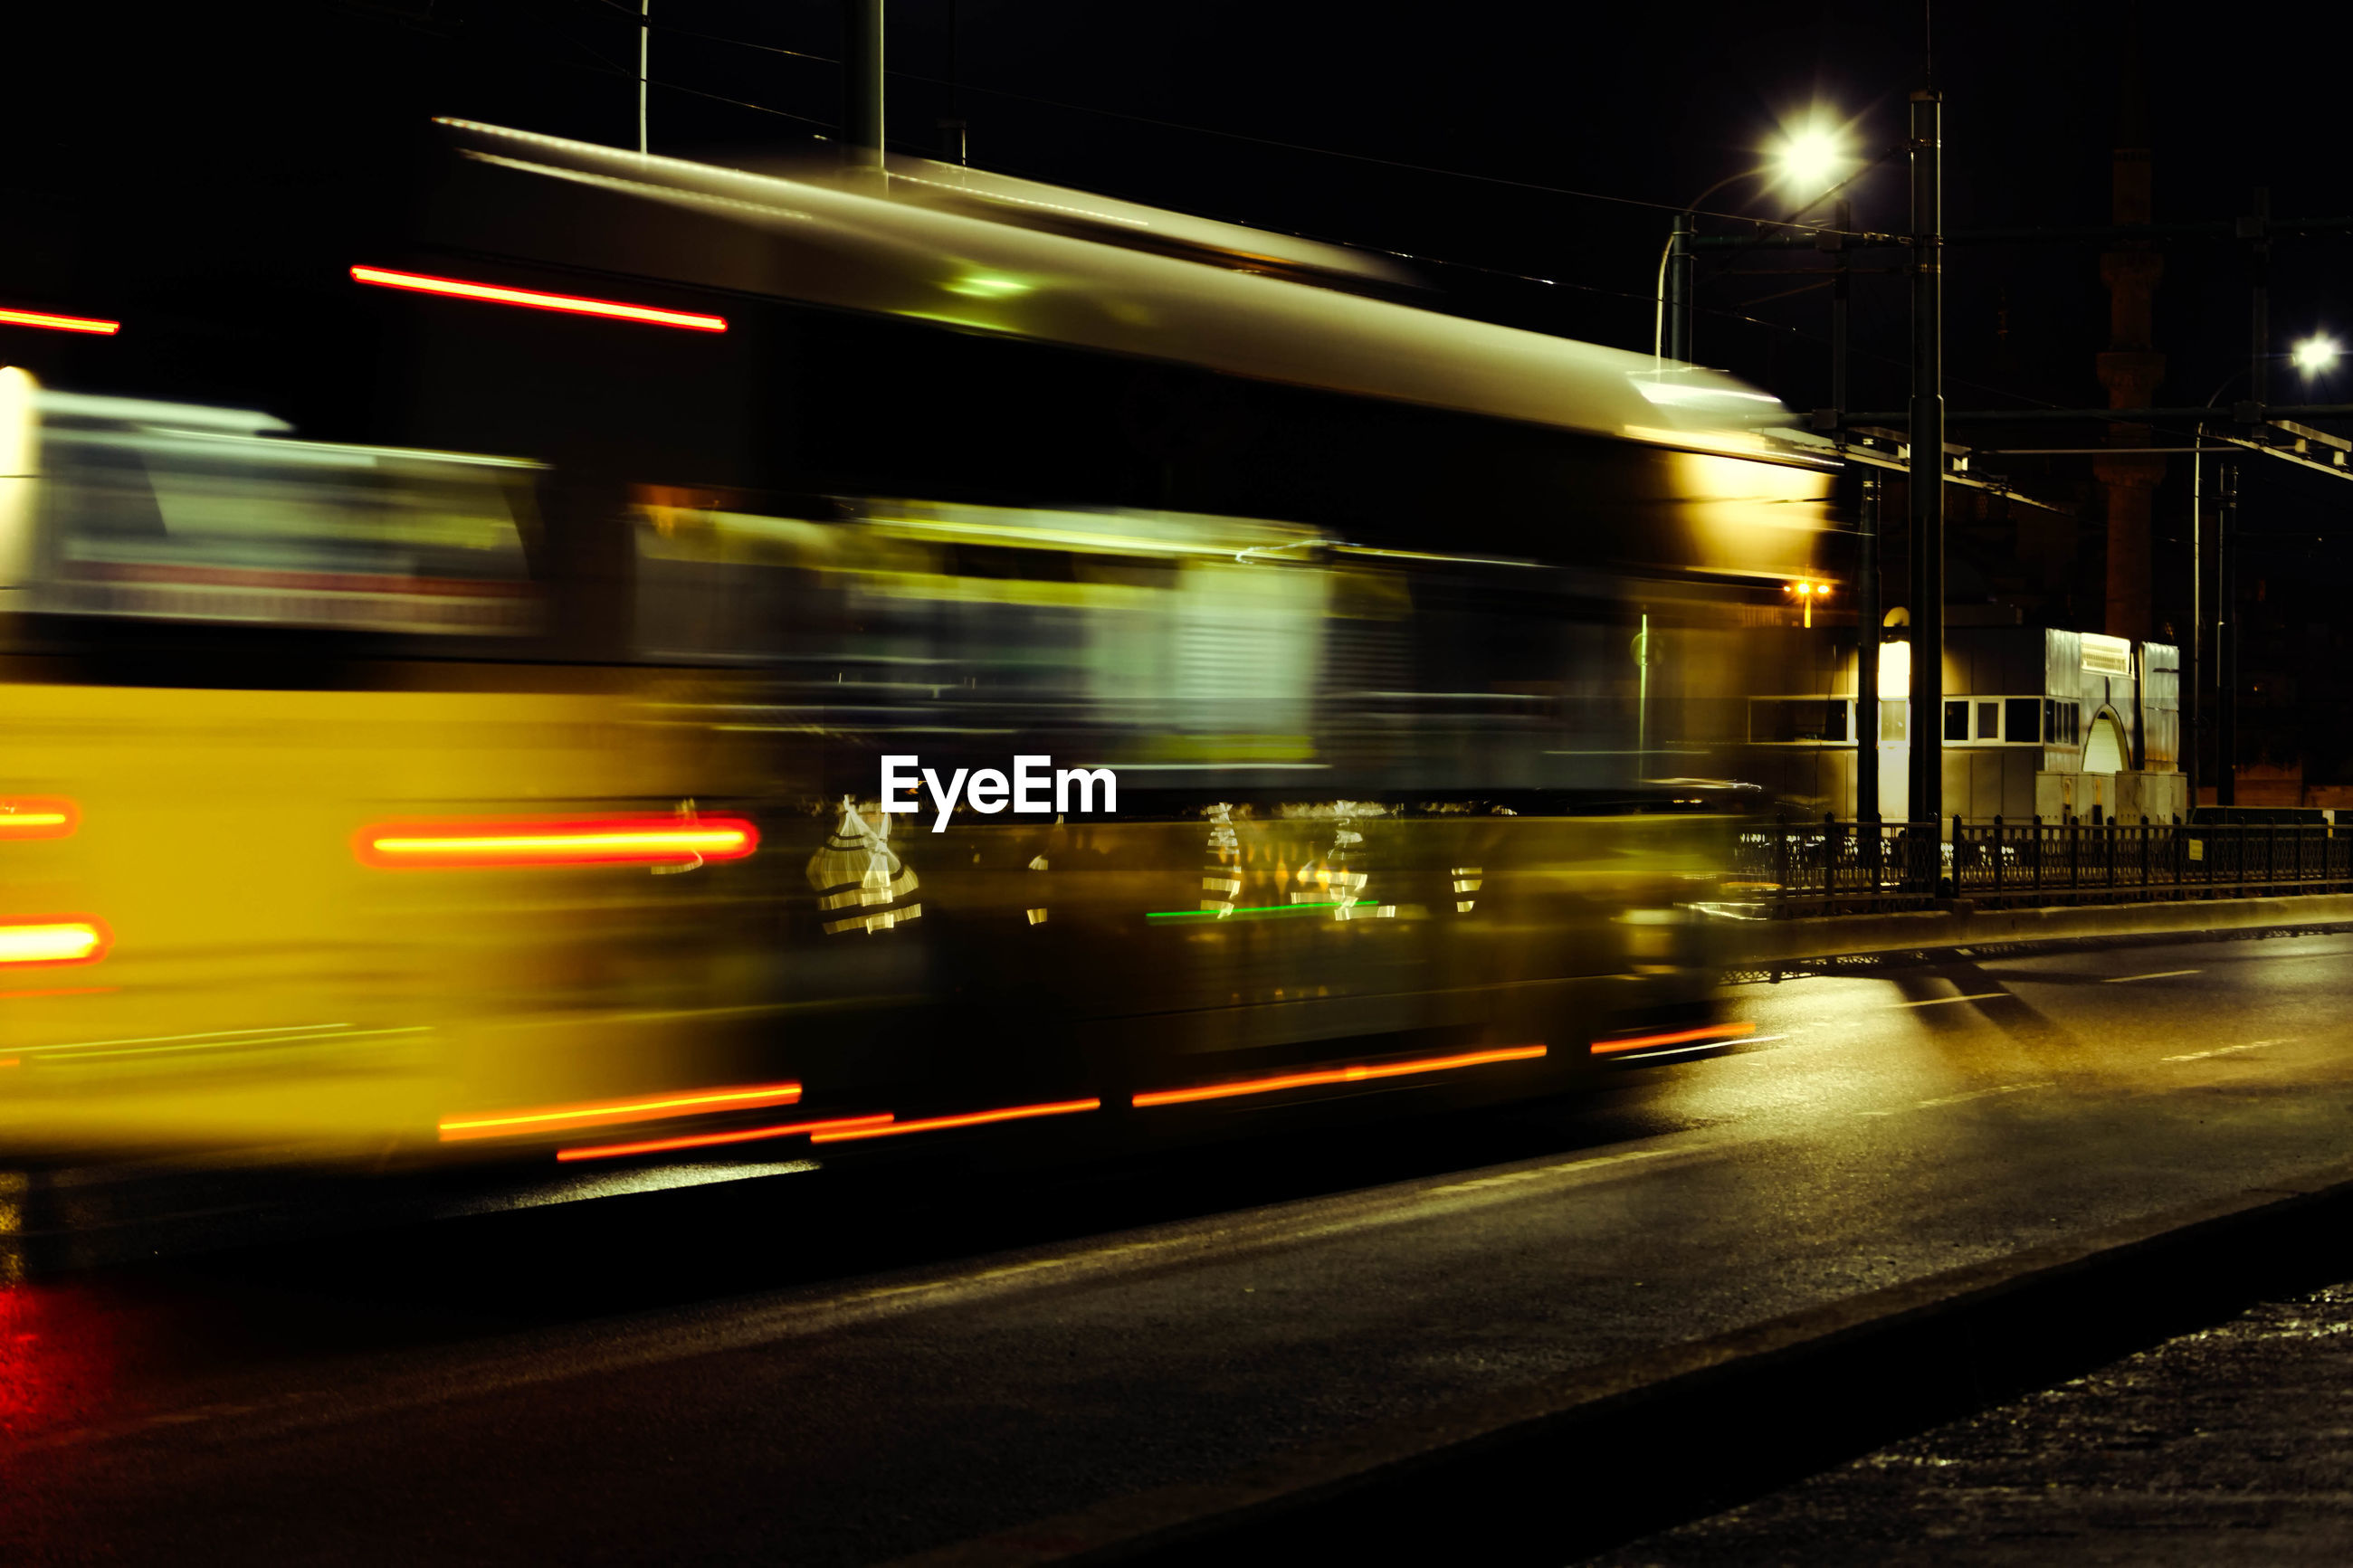 BLURRED MOTION OF CARS ON ROAD AT NIGHT